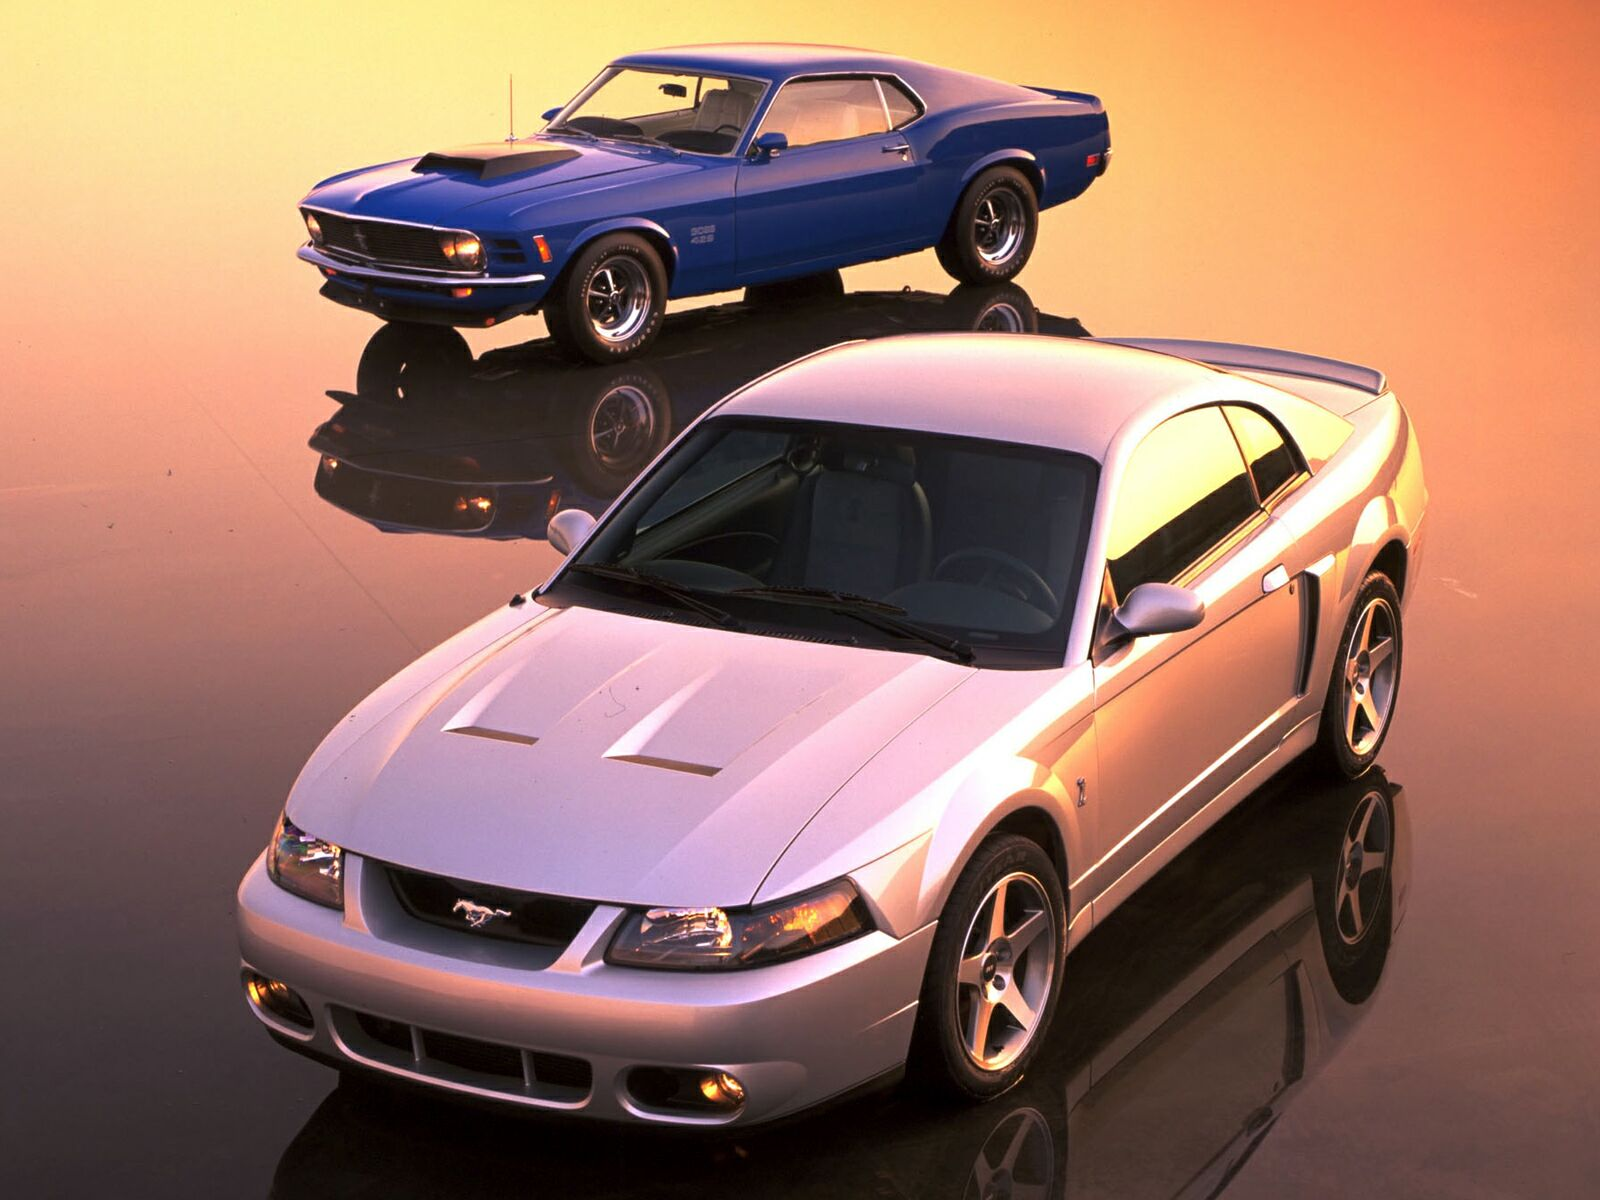 Ford Mustang Cobra photo 10612